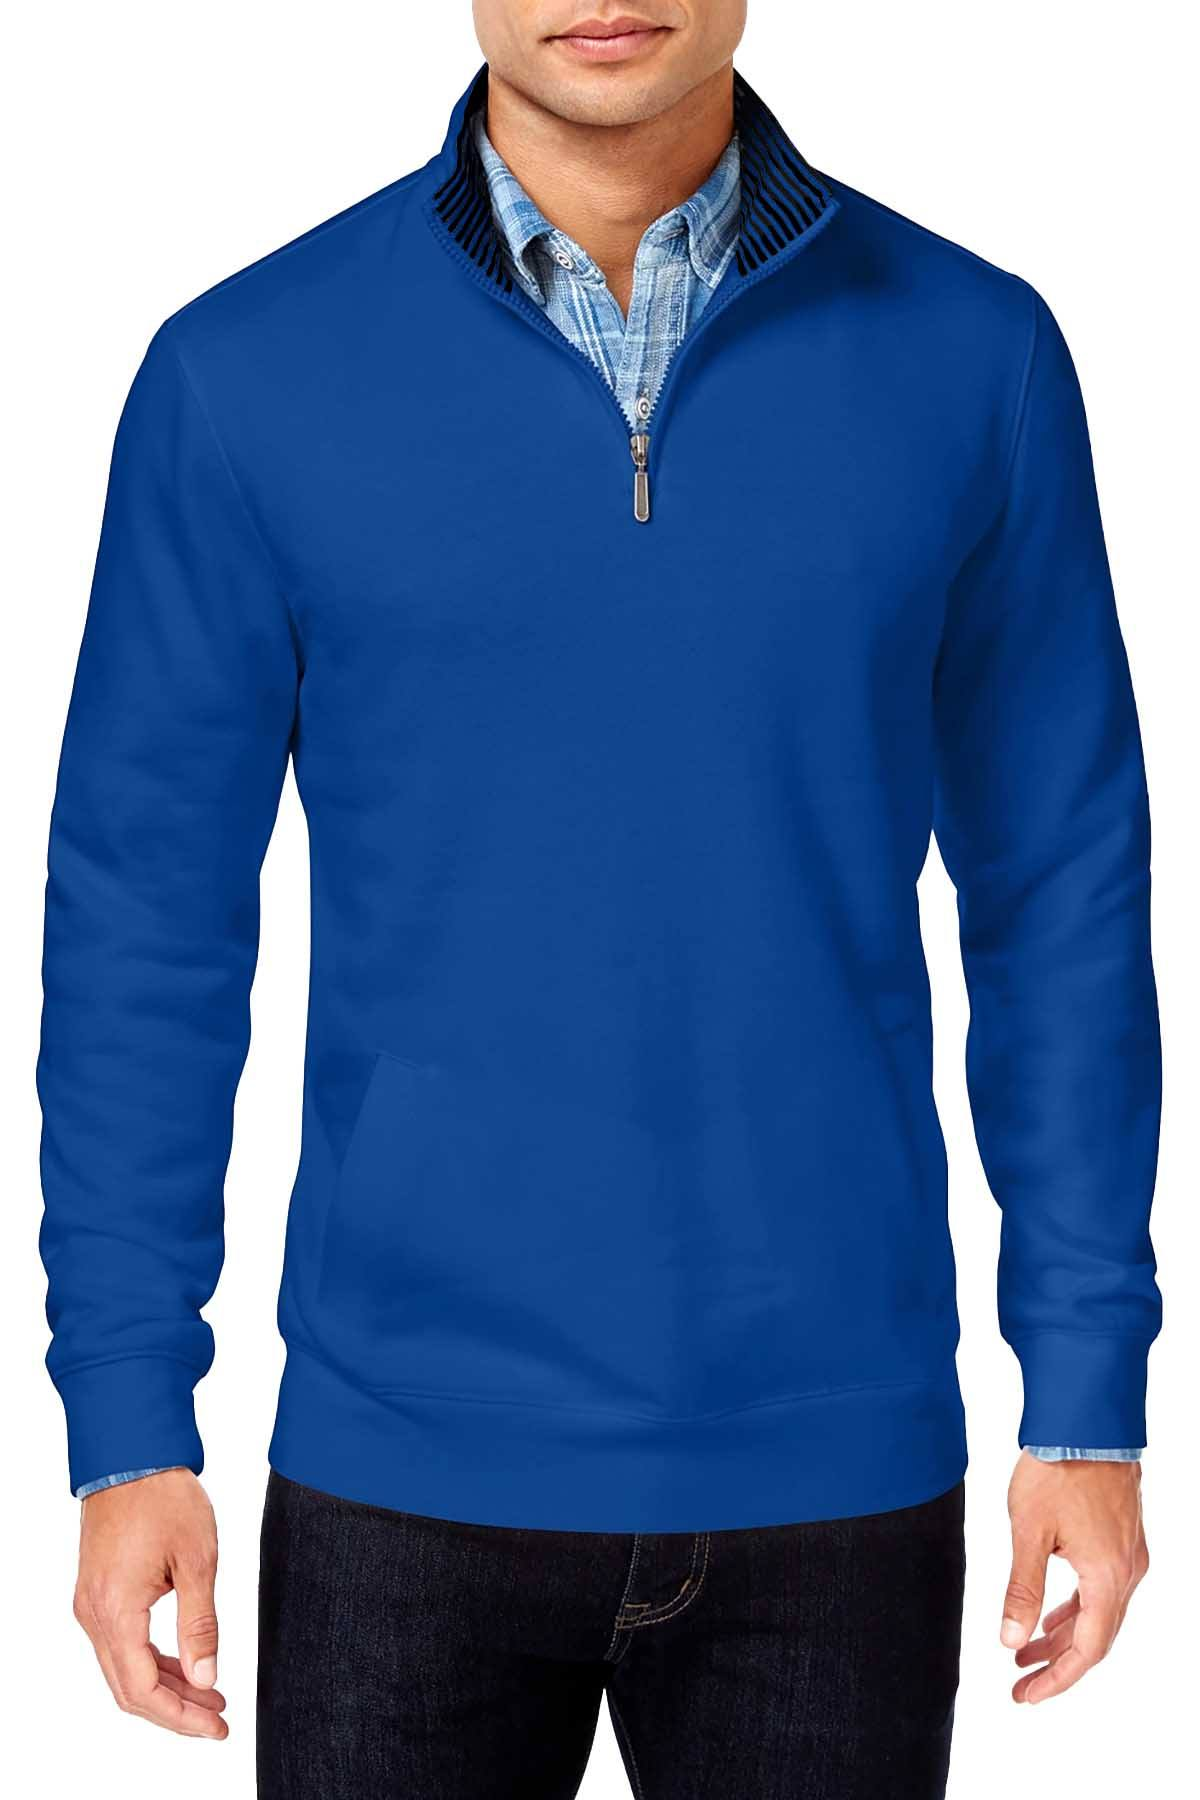 Club Room Lazulite Blue Big/Tall Quarter Zip Pullover